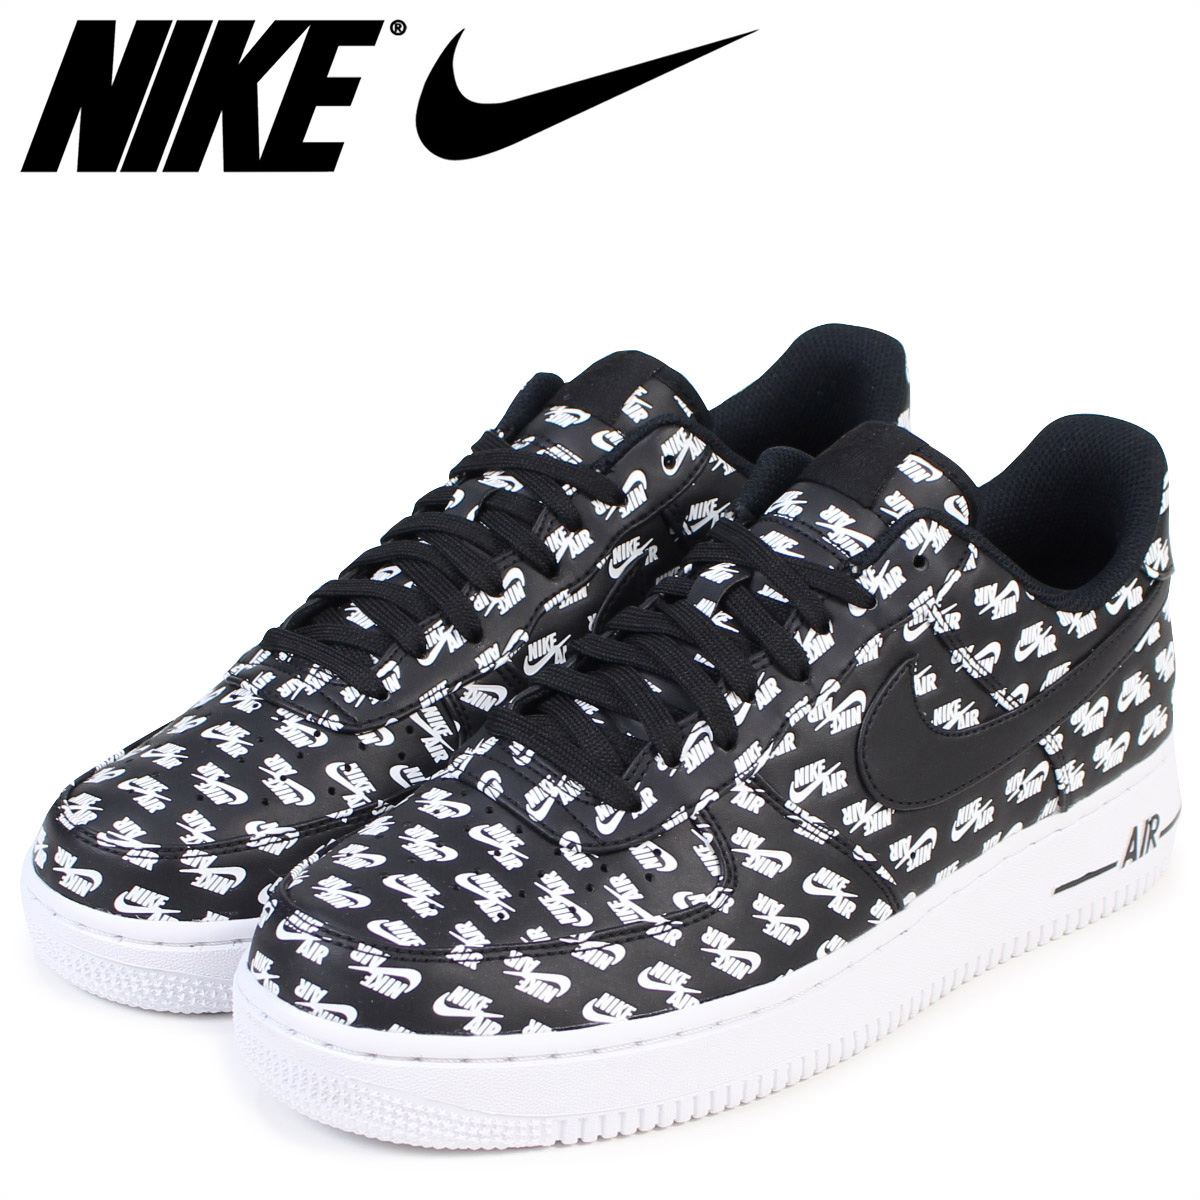 nike men's air force 1 07 qs nz